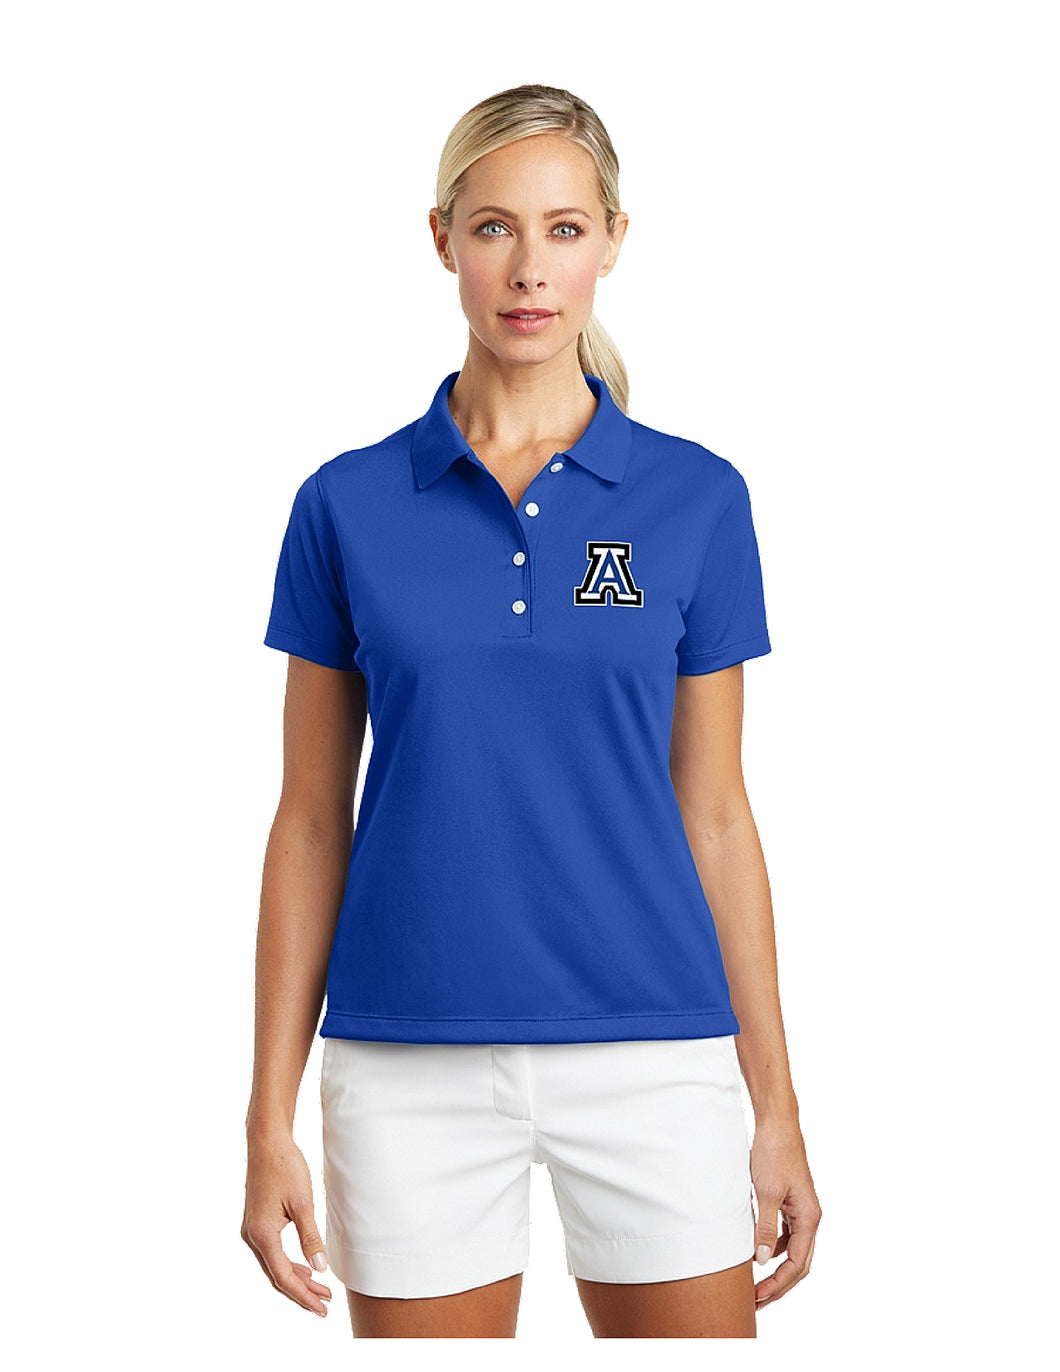 Nike Ladies Tech Basic Dri-FIT Polo Royal with Embroidered Acalanes